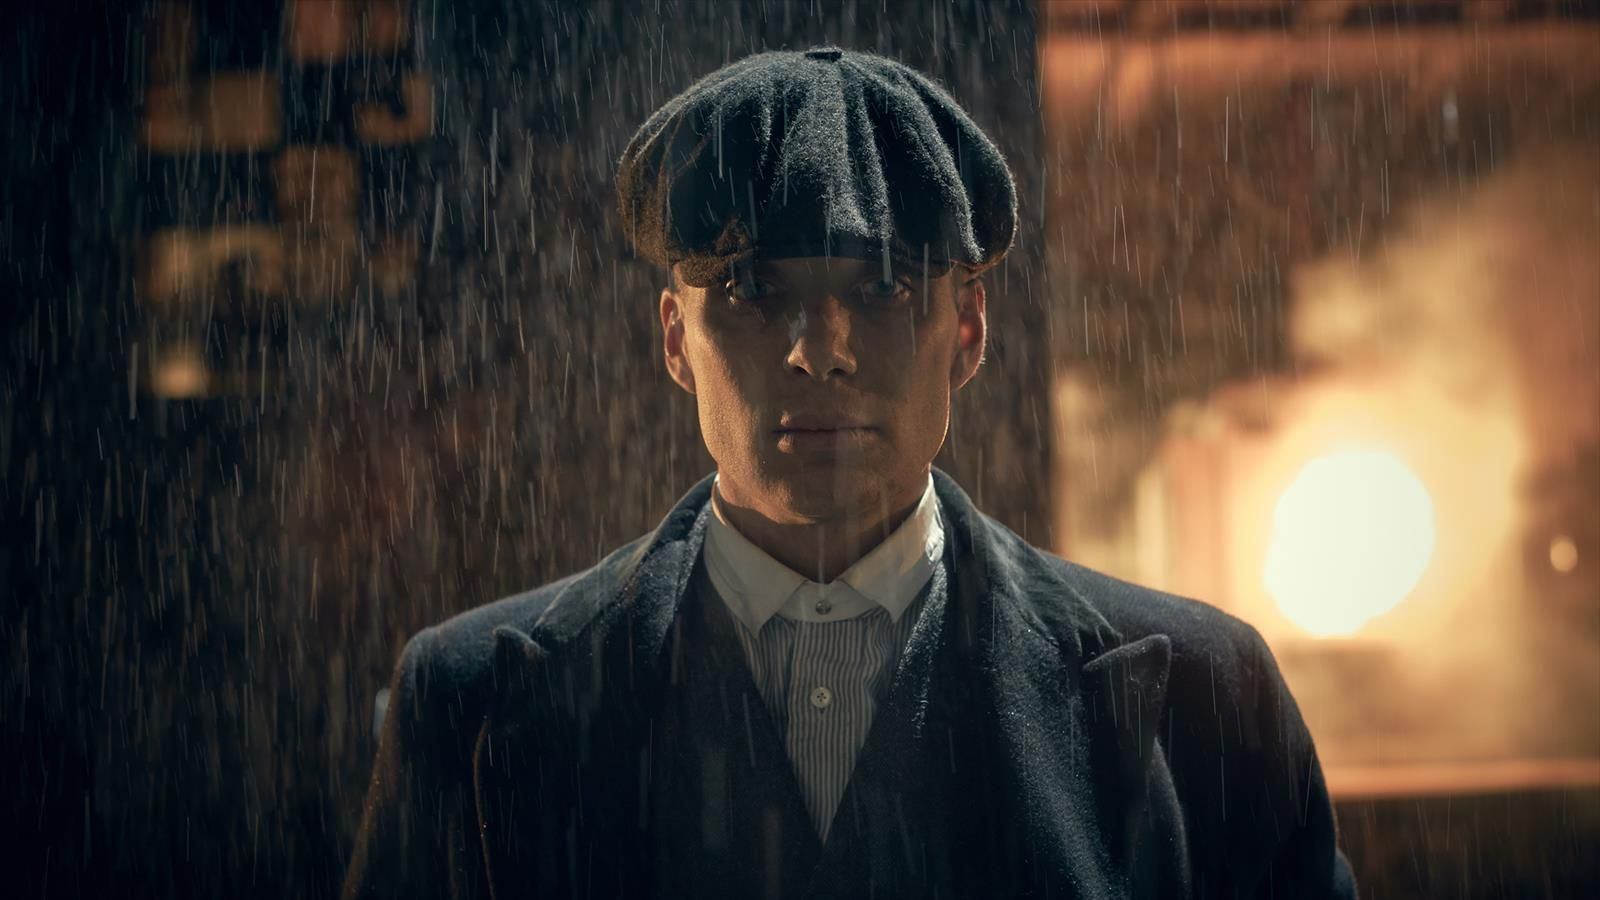 Peaky Blinders Wallpapers Hd Desktop And Mobile Backgrounds